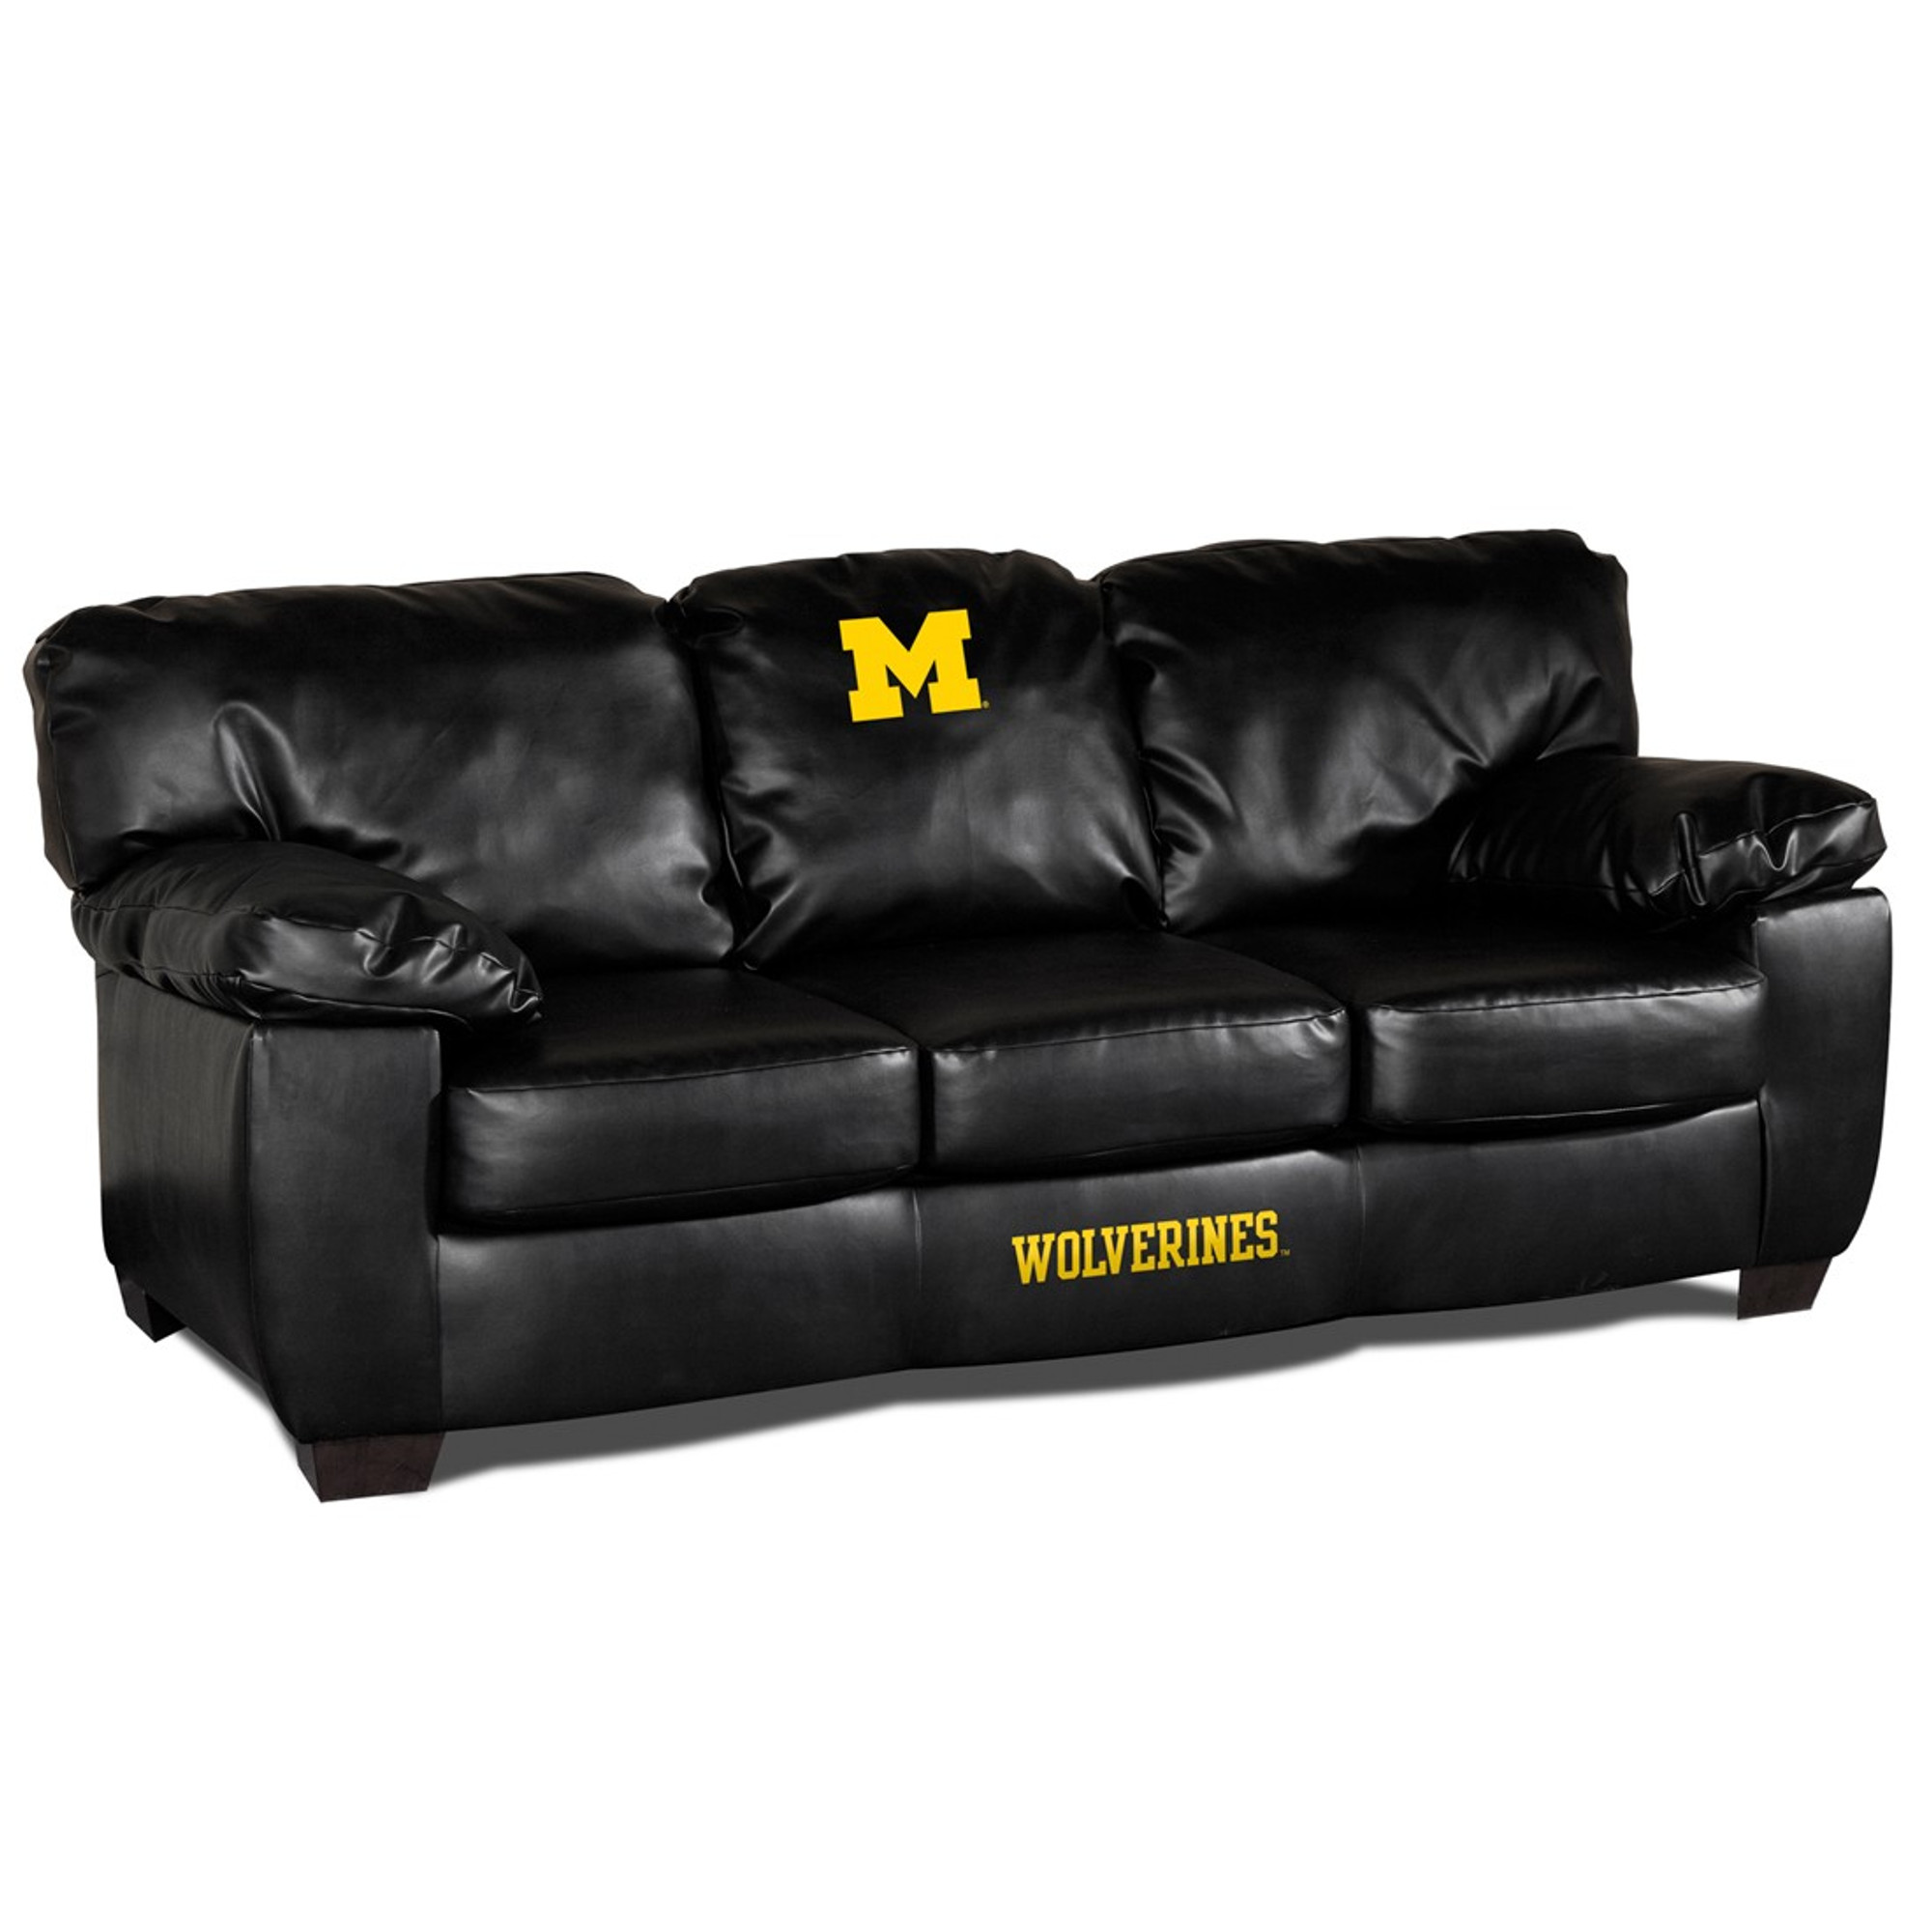 Michigan Wolverines Classic Leather Sofa